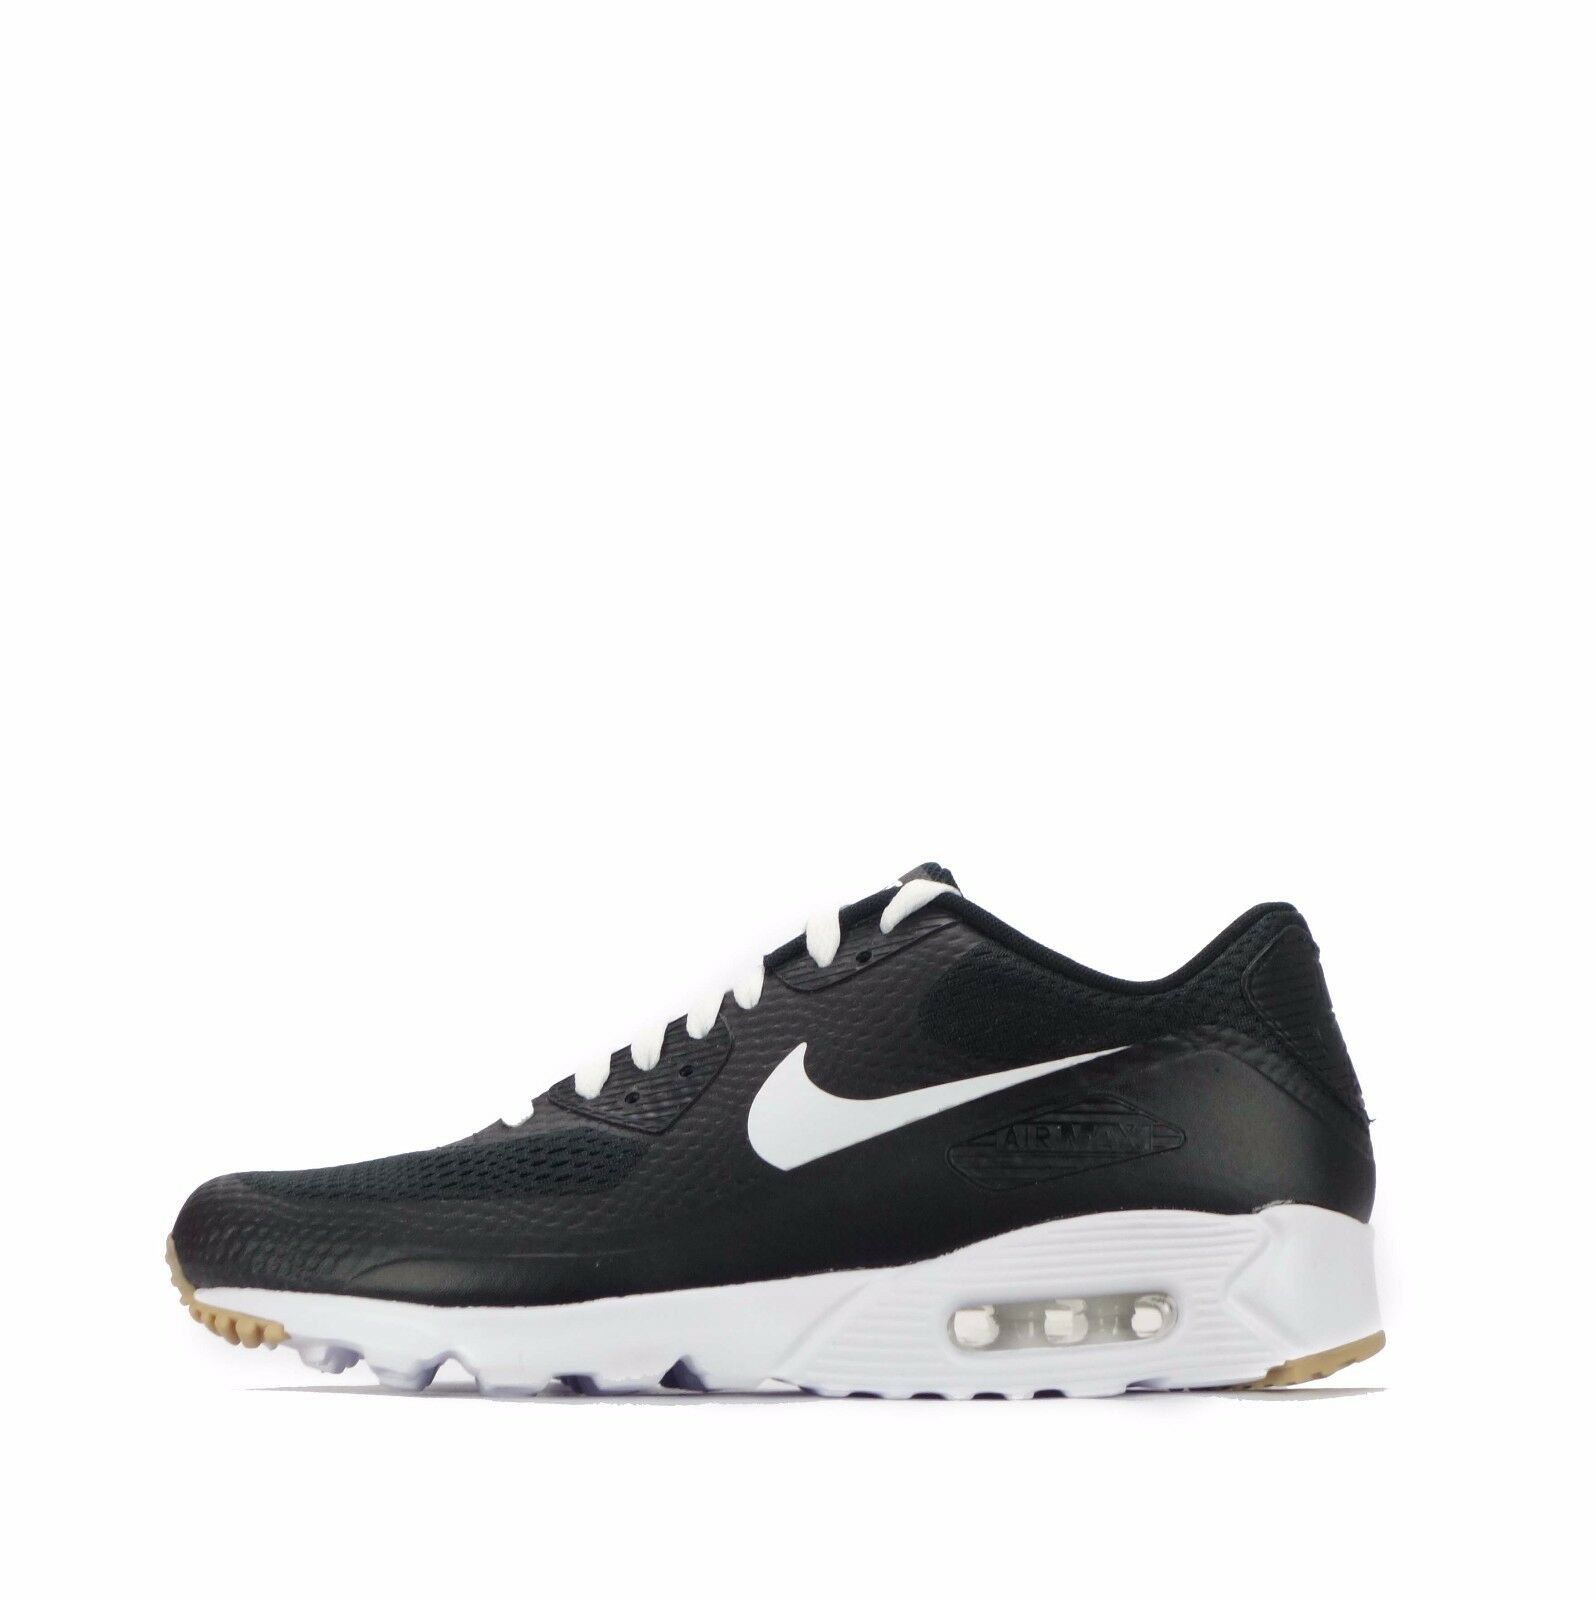 Nike Air Max 90 Ultra Essential Men's Shoes Black/White